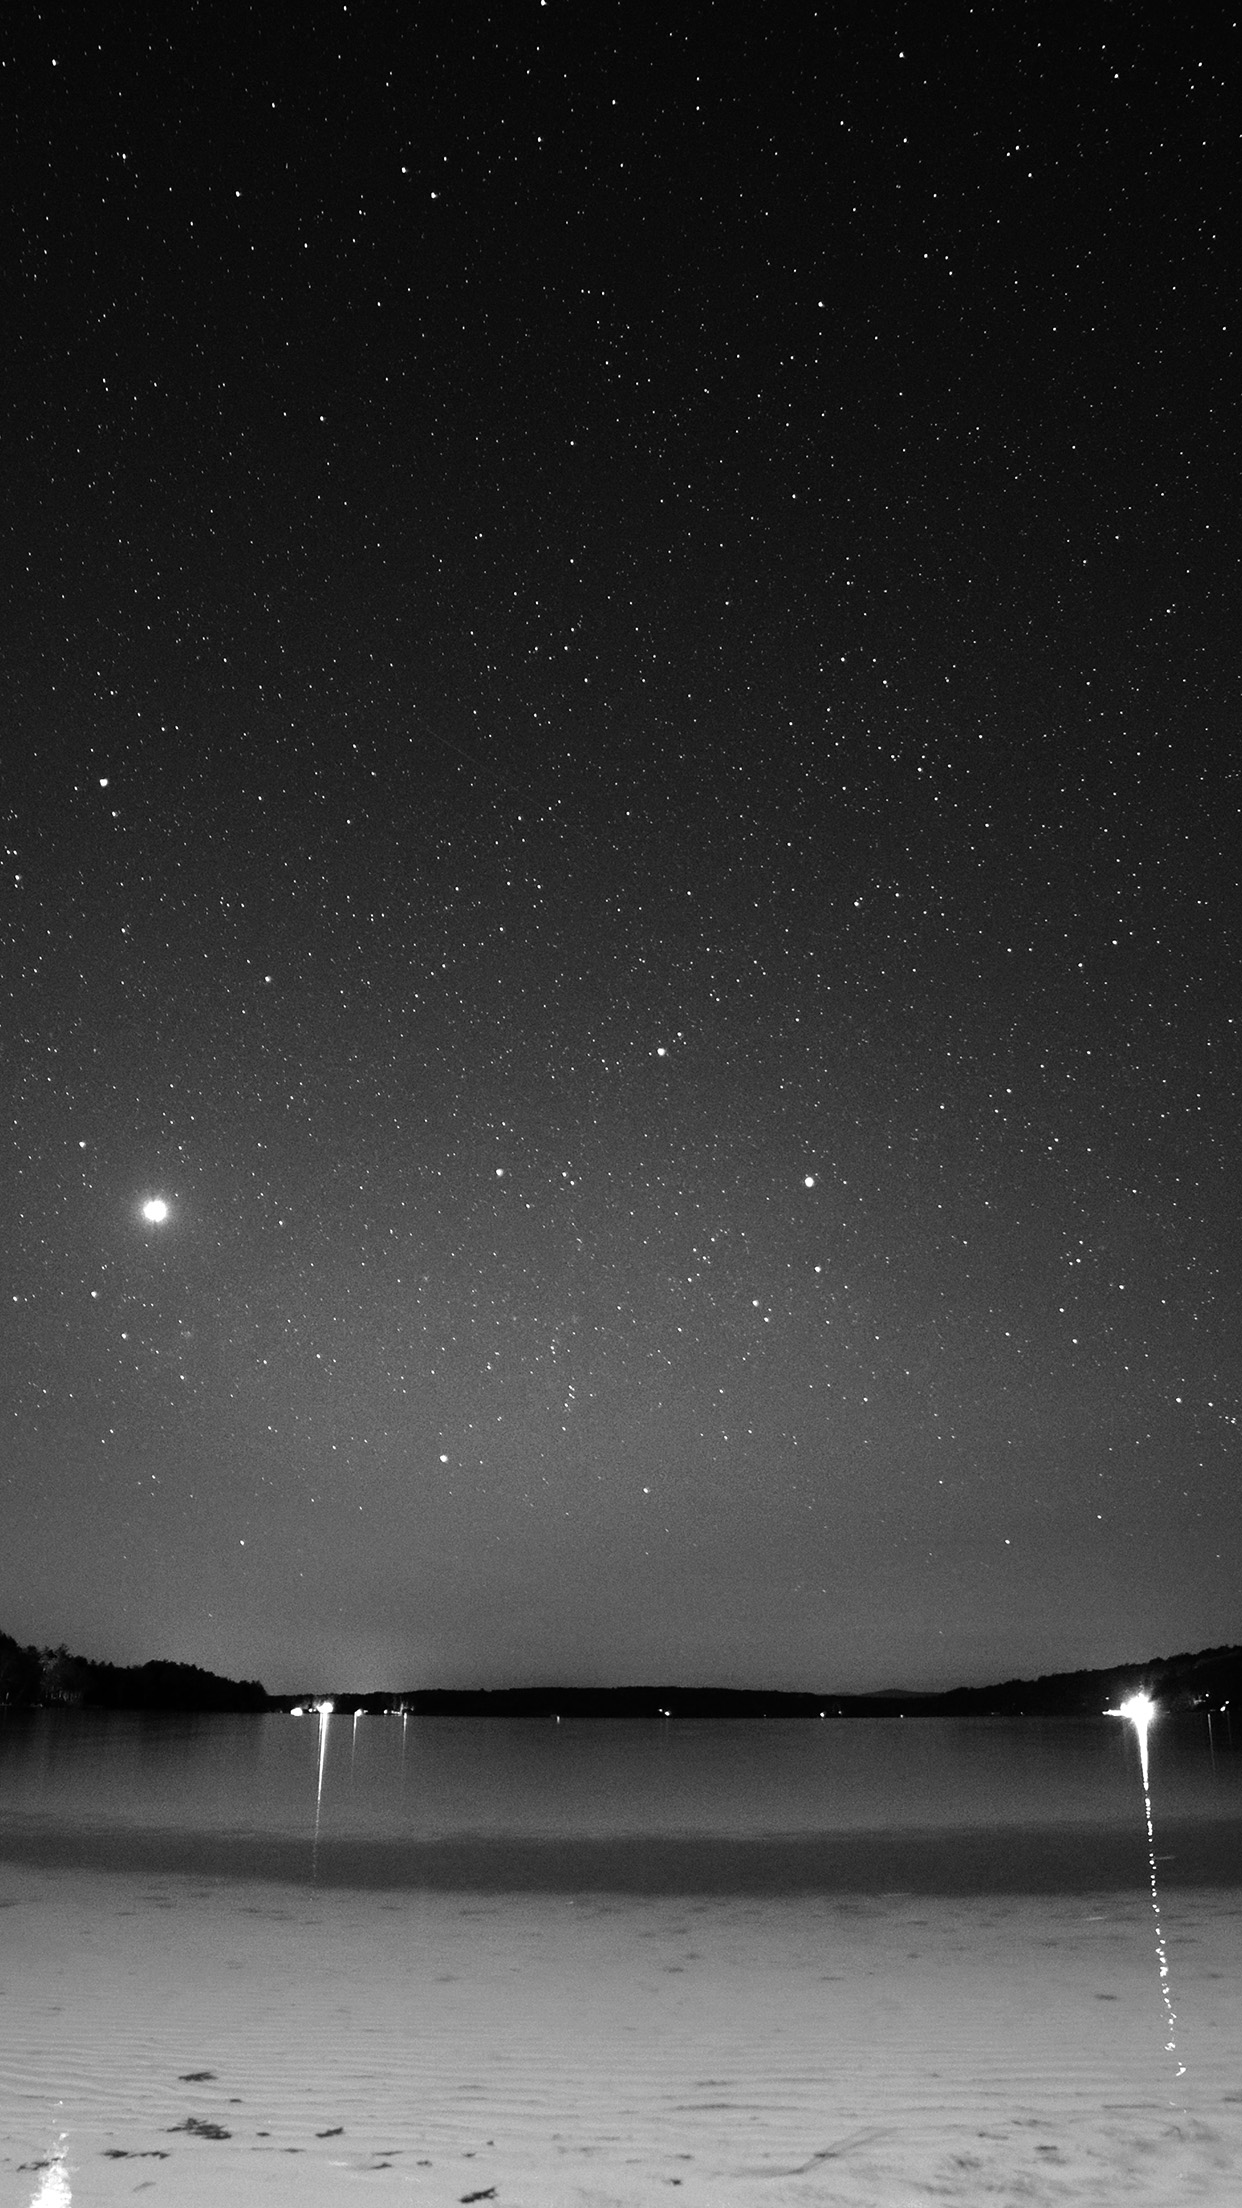 Night Beach Sea Vacation Nature Star Sky Dark Bw Android wallpaper